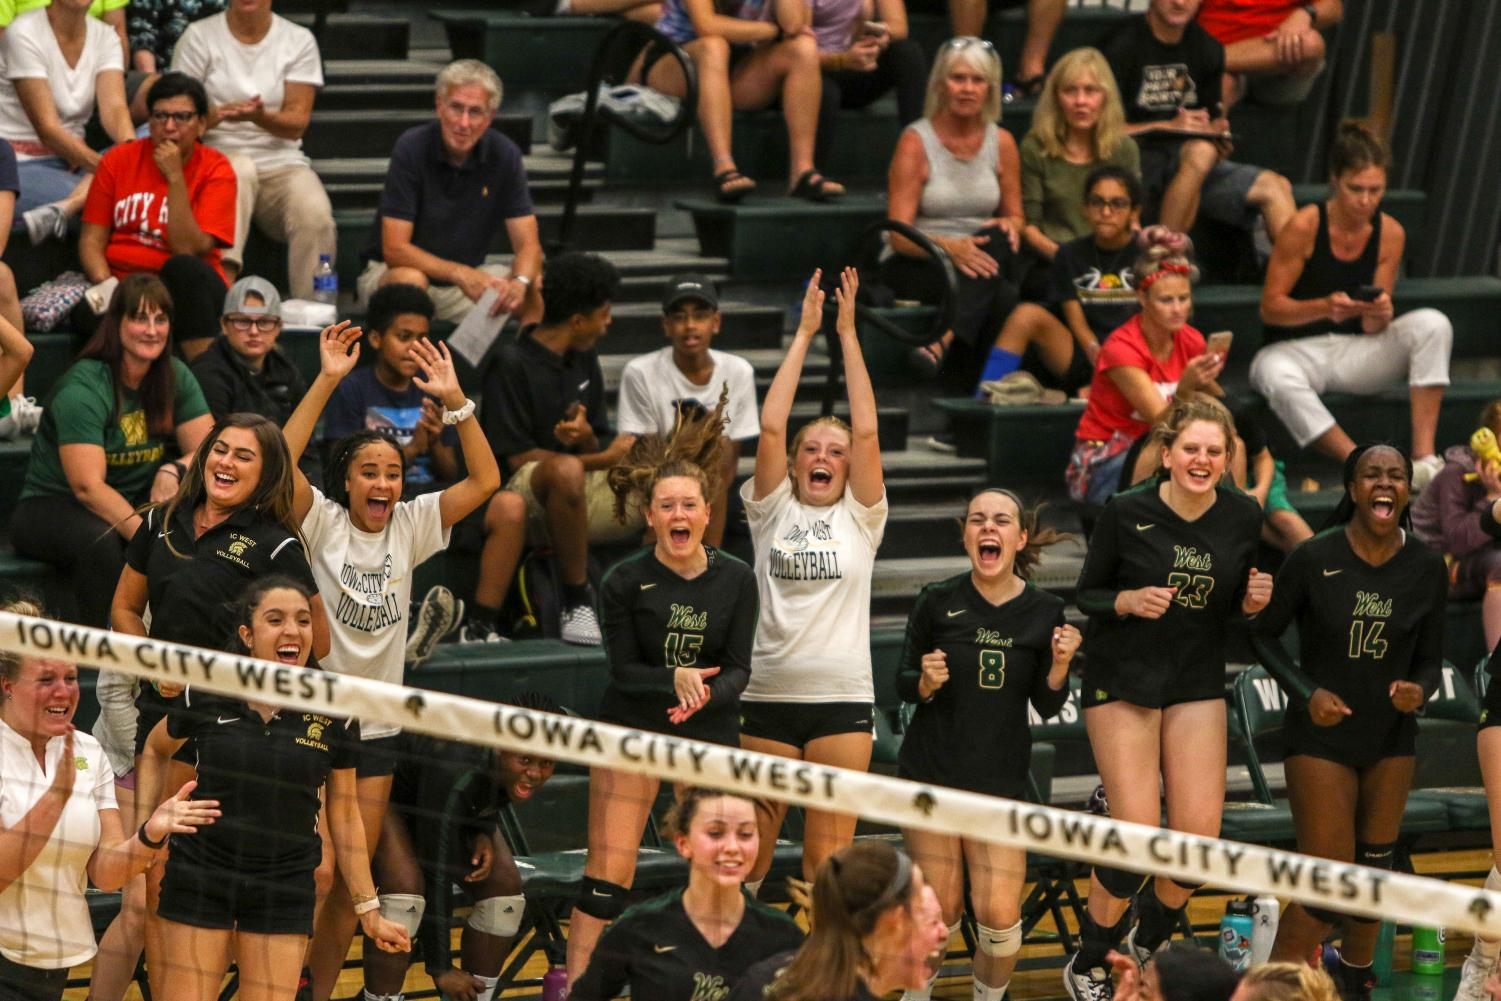 The+rest+of+the+team+and+coaches+celebrate+a+point+on+Tuesday%2C+August+27+during+the+Battle+for+the+Spike.